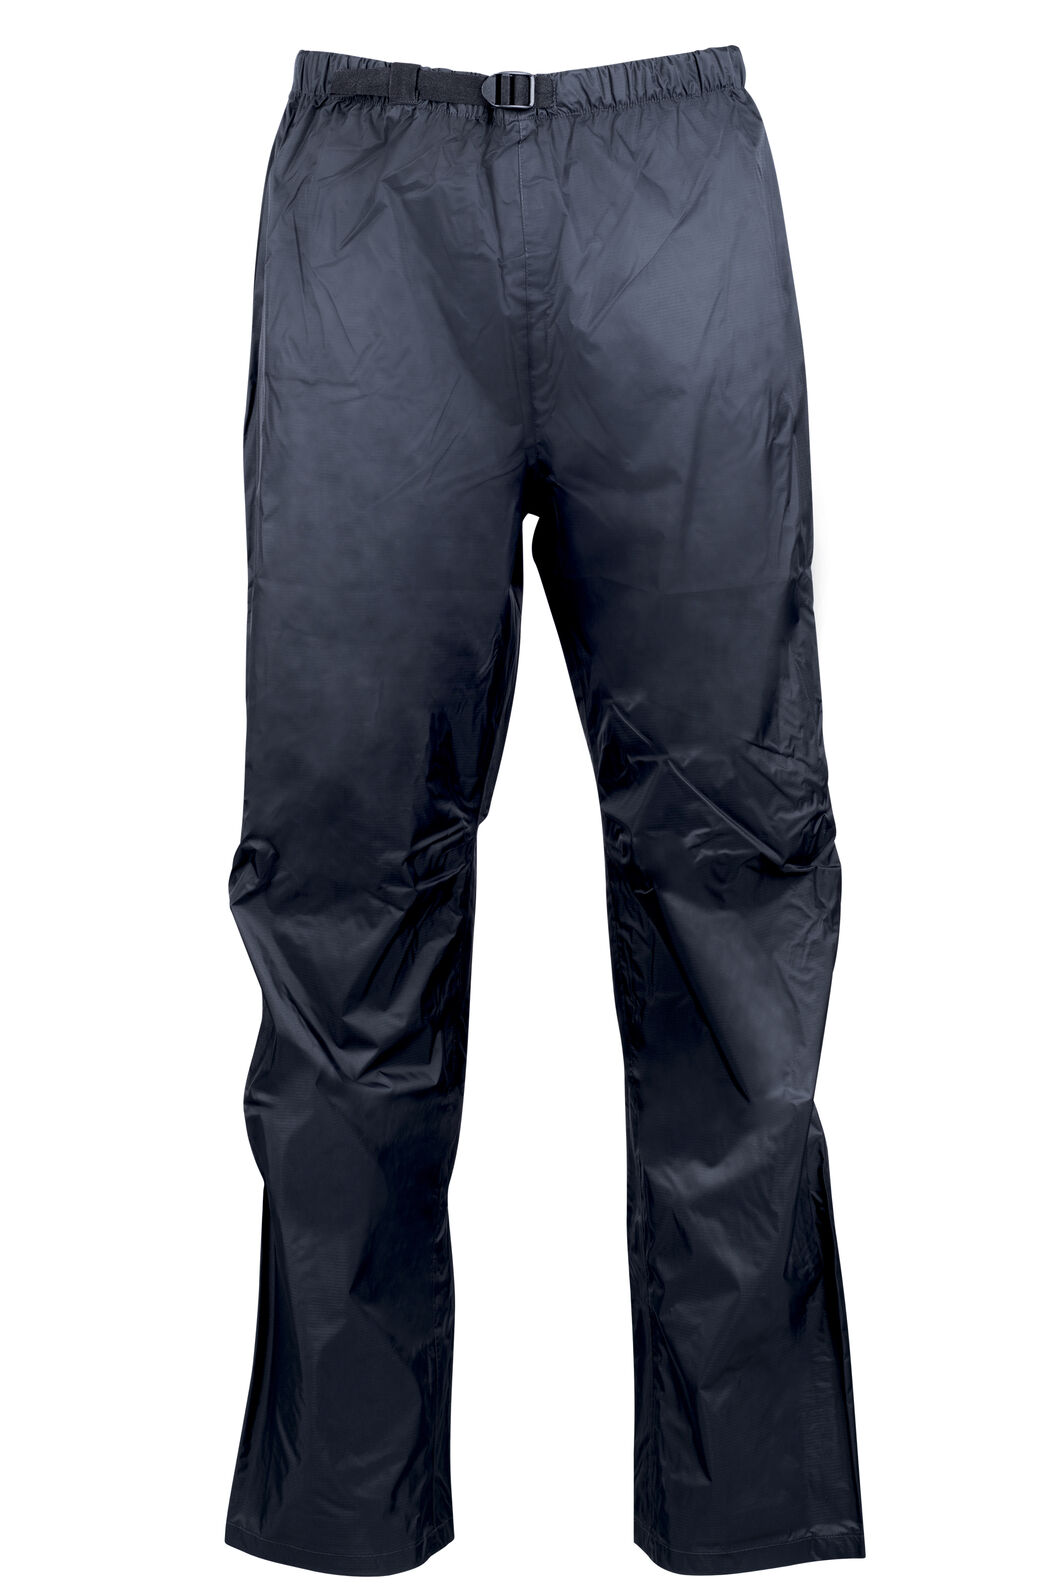 Macpac Jetstream Rain Pants - Men's, Black, hi-res